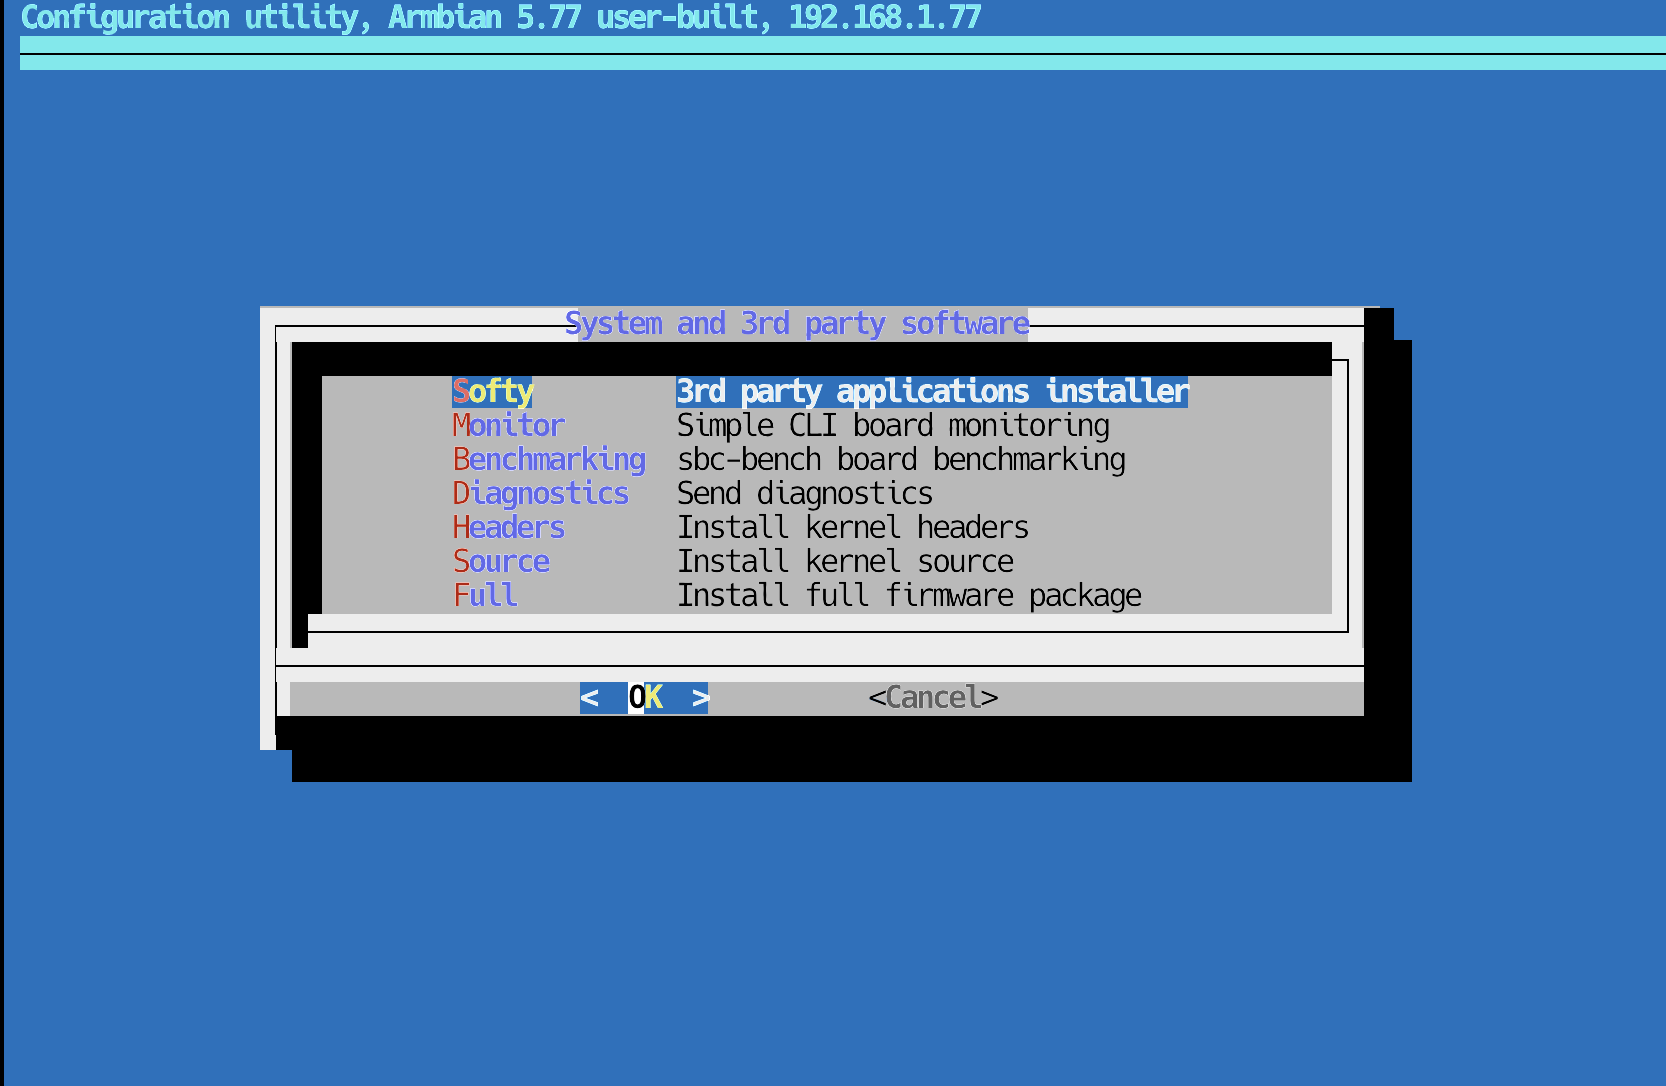 Installing Softy in Armbian